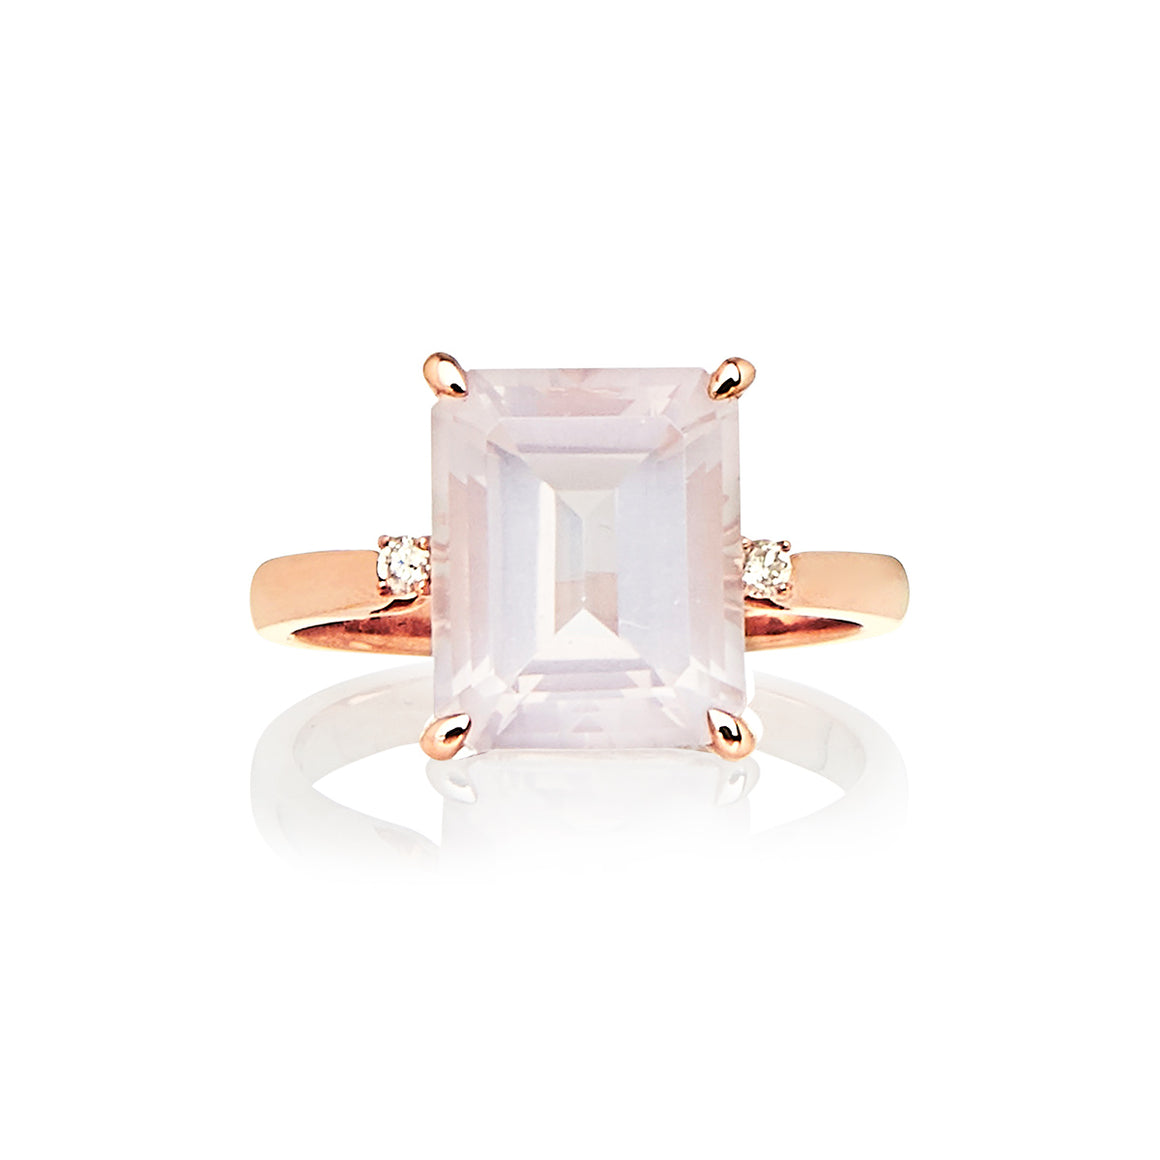 Rose Quartz and Diamond Bellagio Ring - Gemma Stone Jewellery